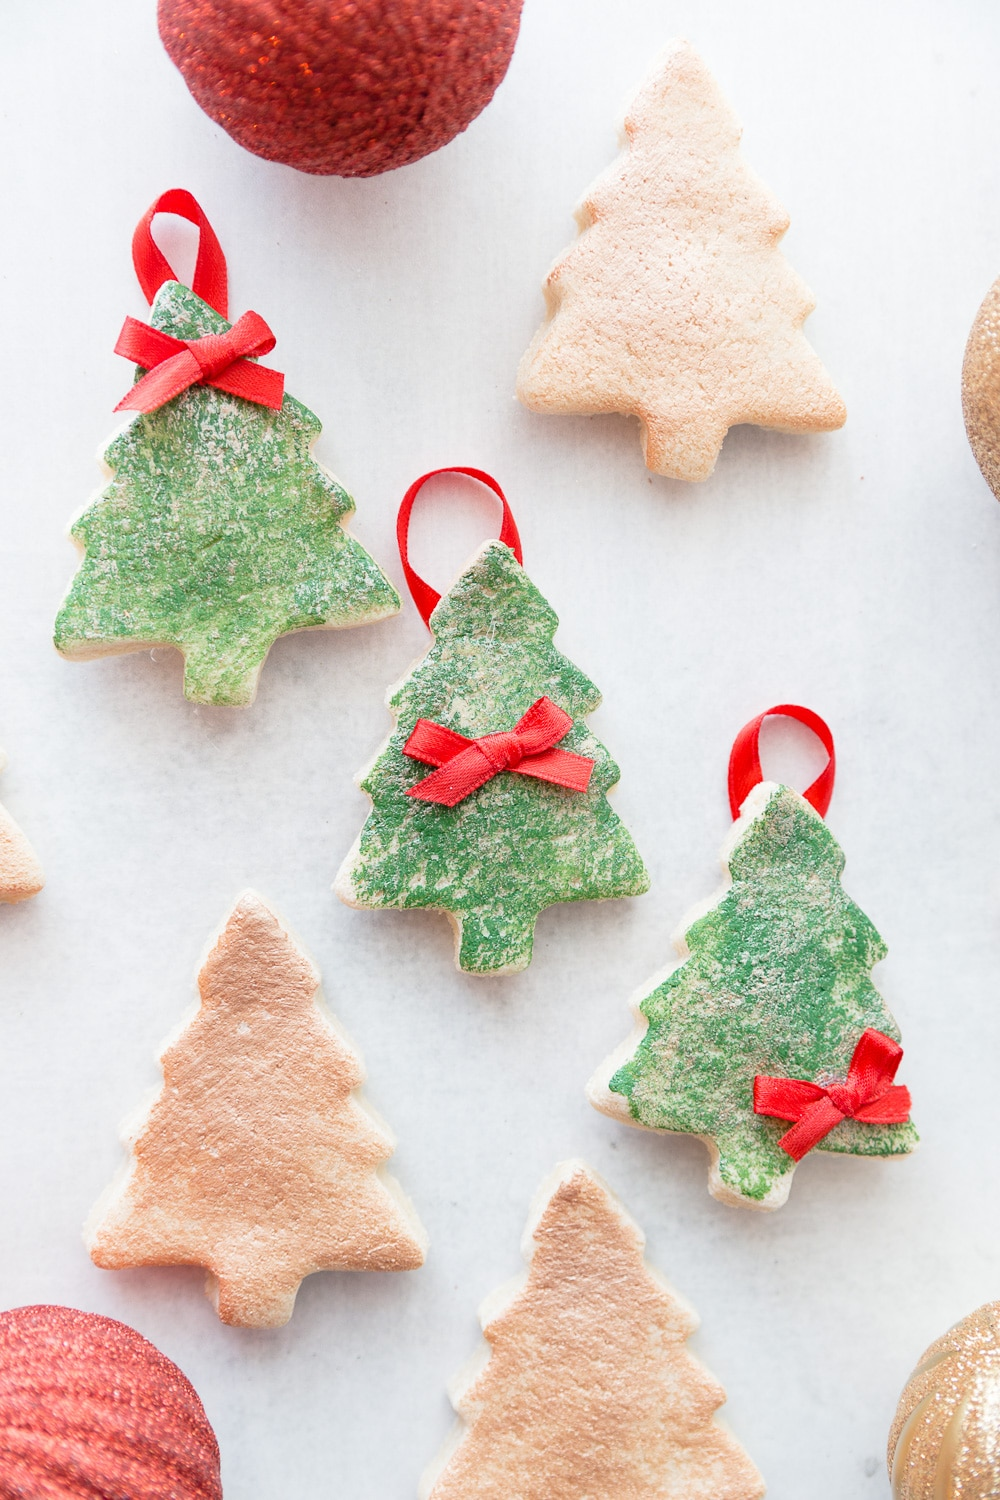 DIY Salt Dough Christmas Tree Ornaments - Easy Salt Dough ...